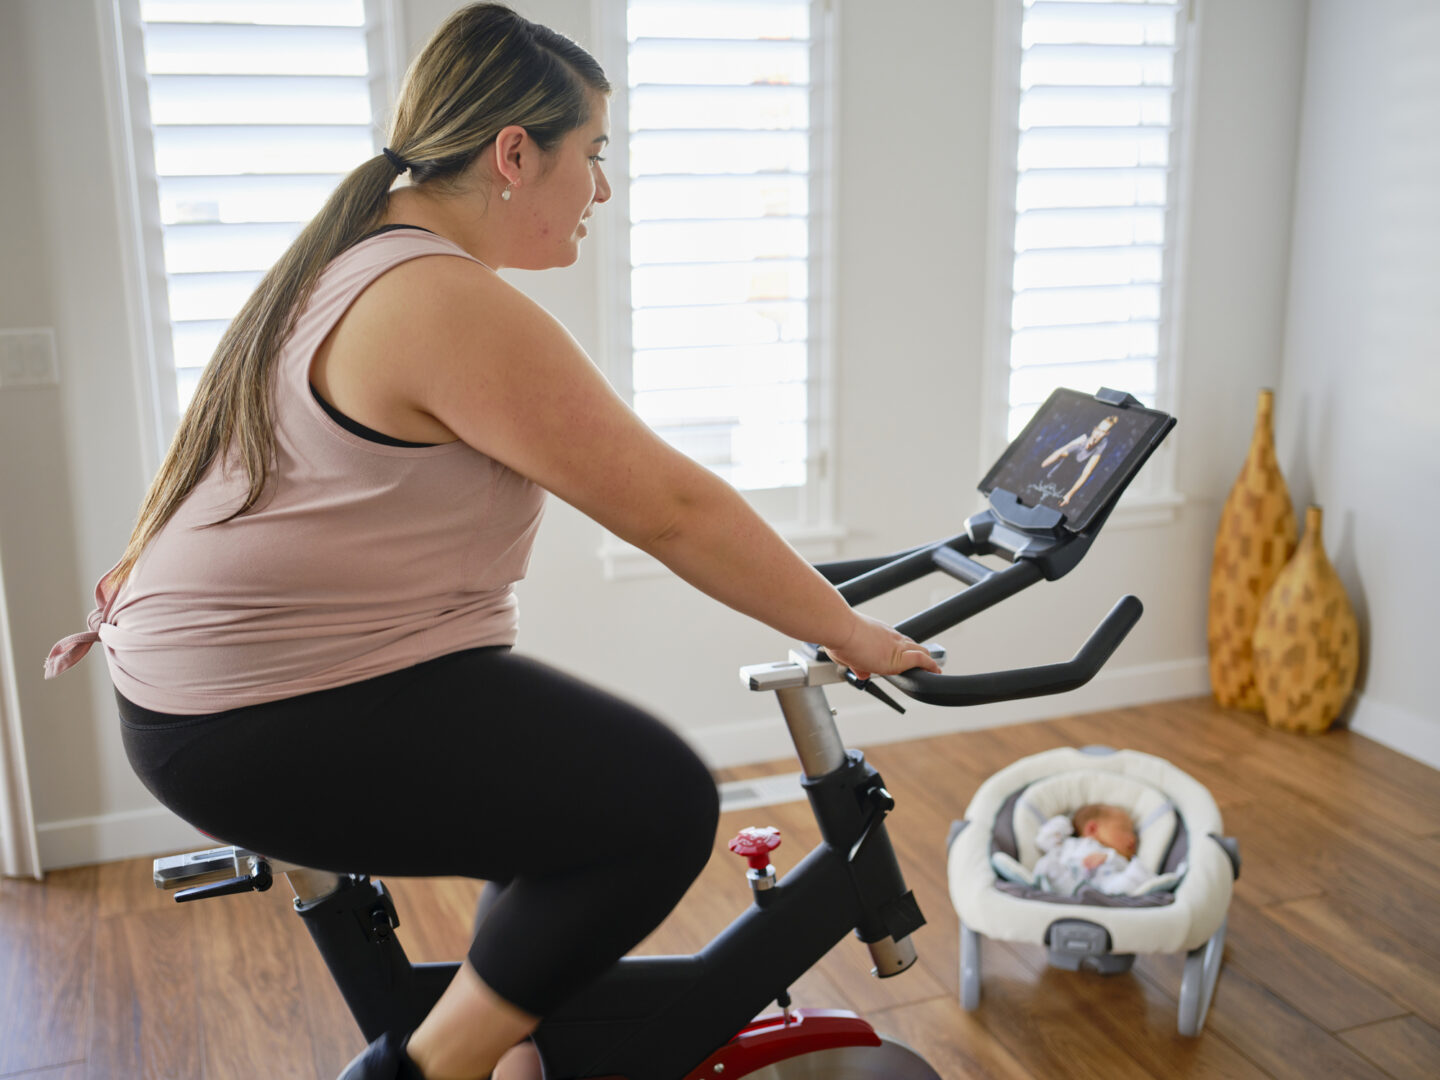 Mother on exercise bike